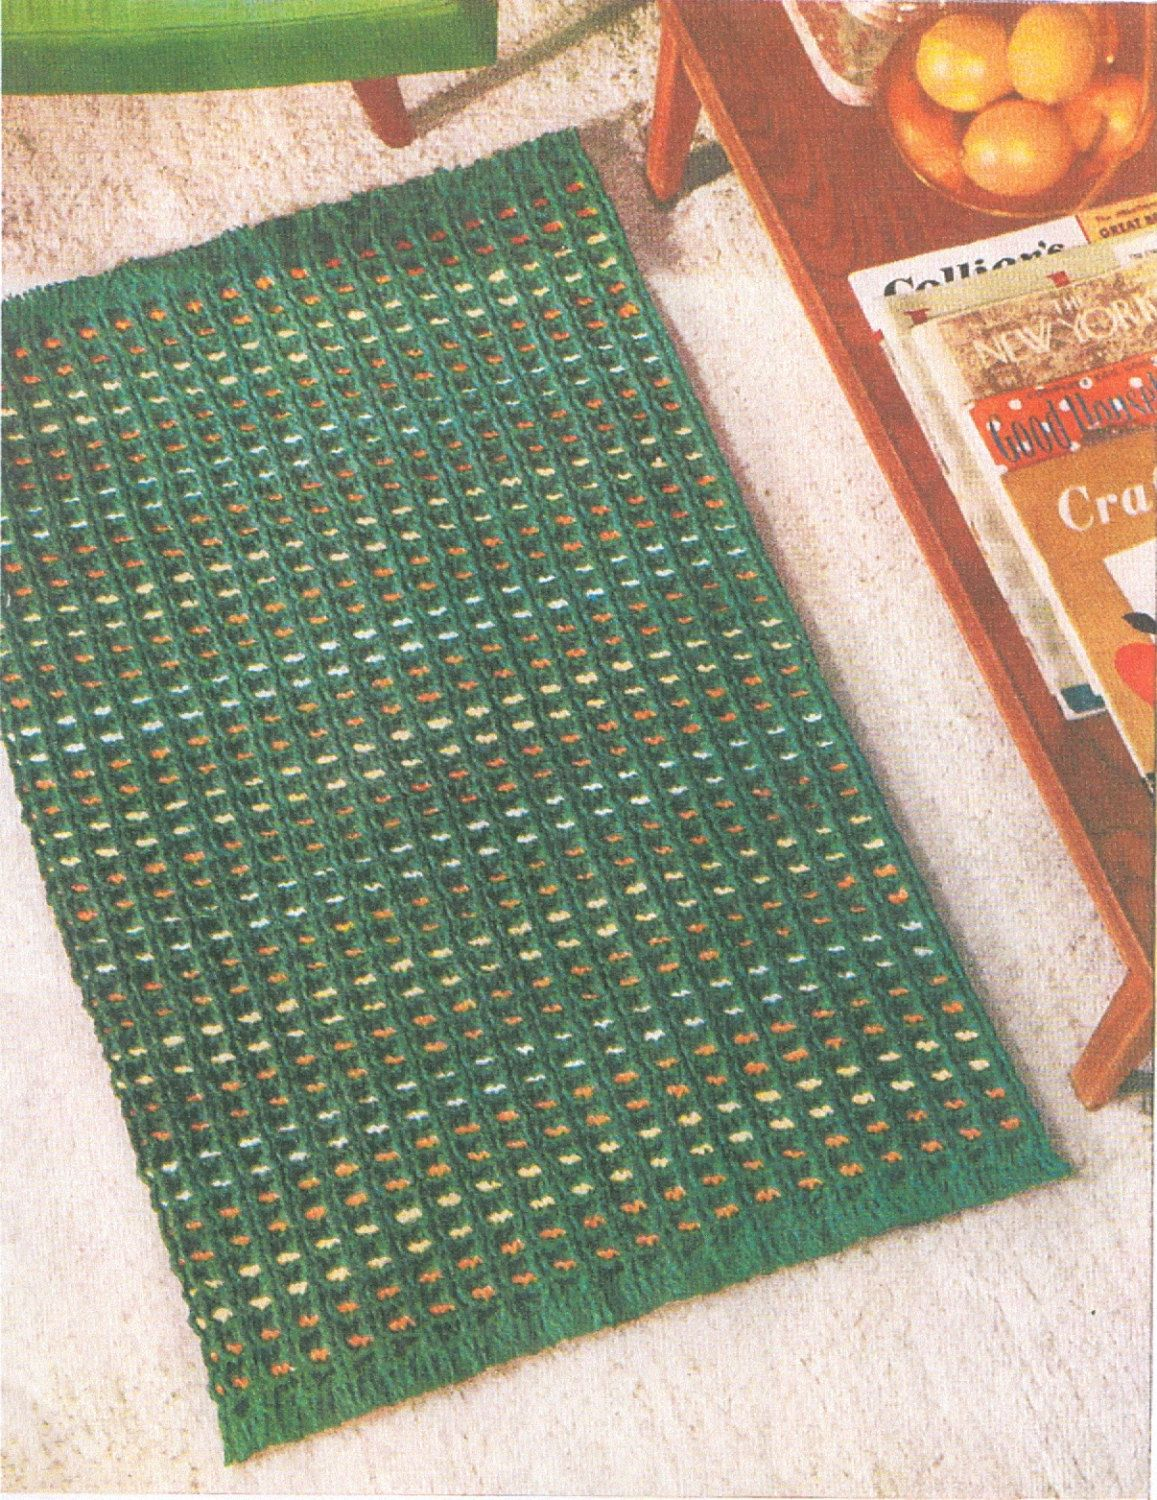 Rugs Mats Crochet Pattern Book 15 Rugs To Make PDF by dianeh5091